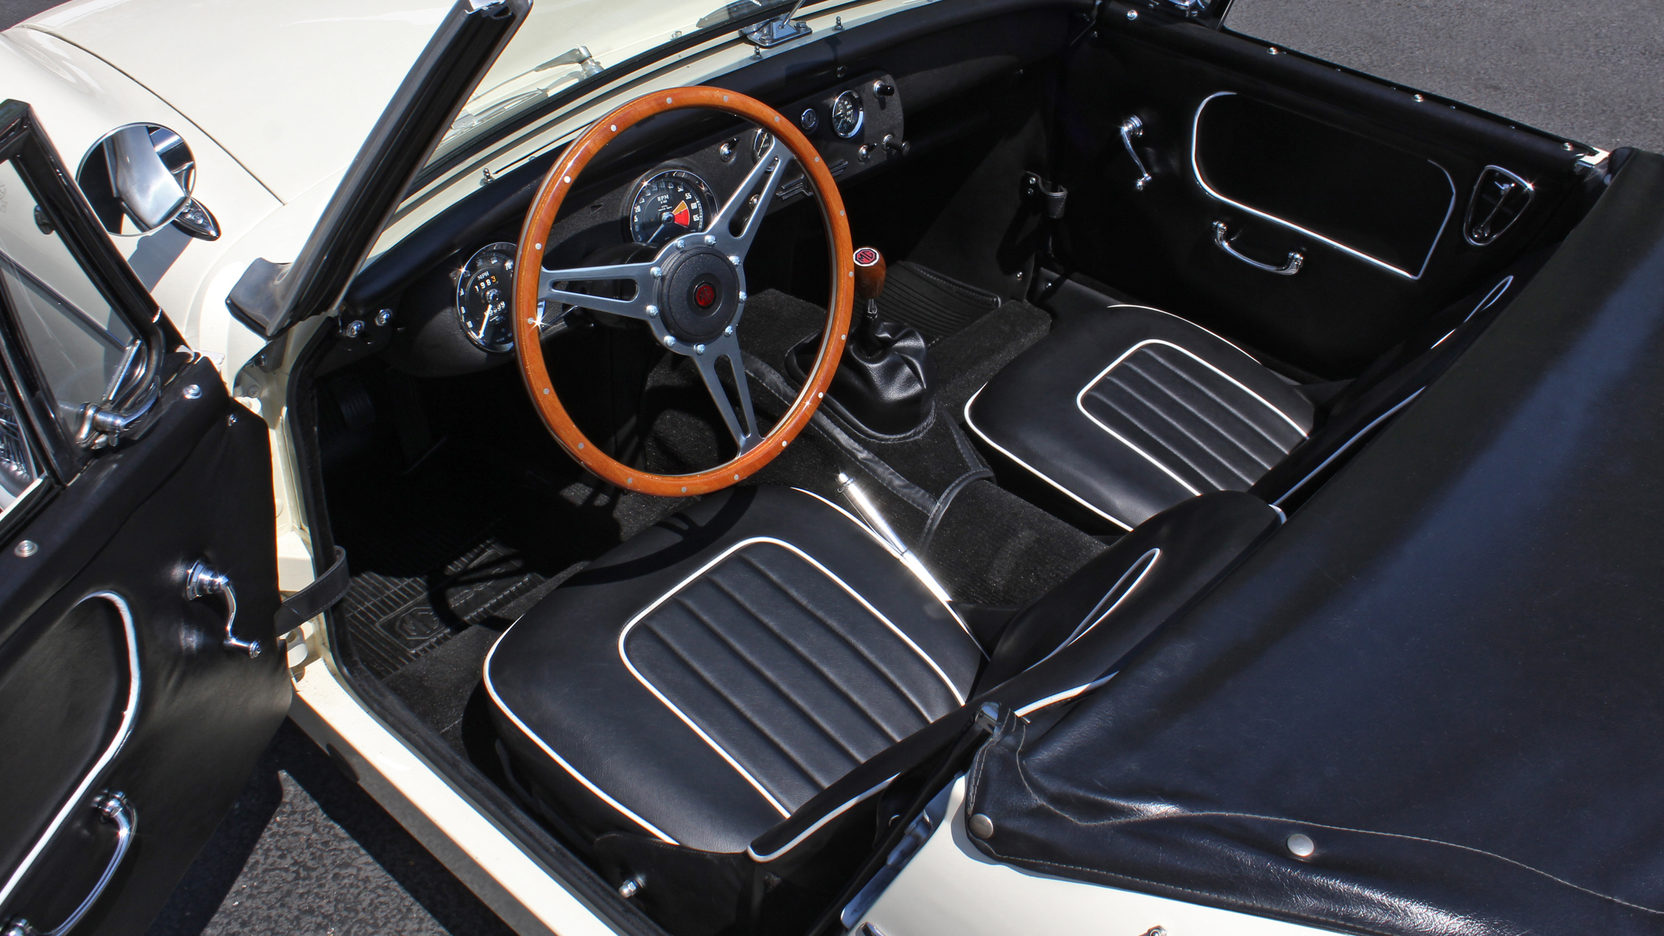 1965 MG Midget interior